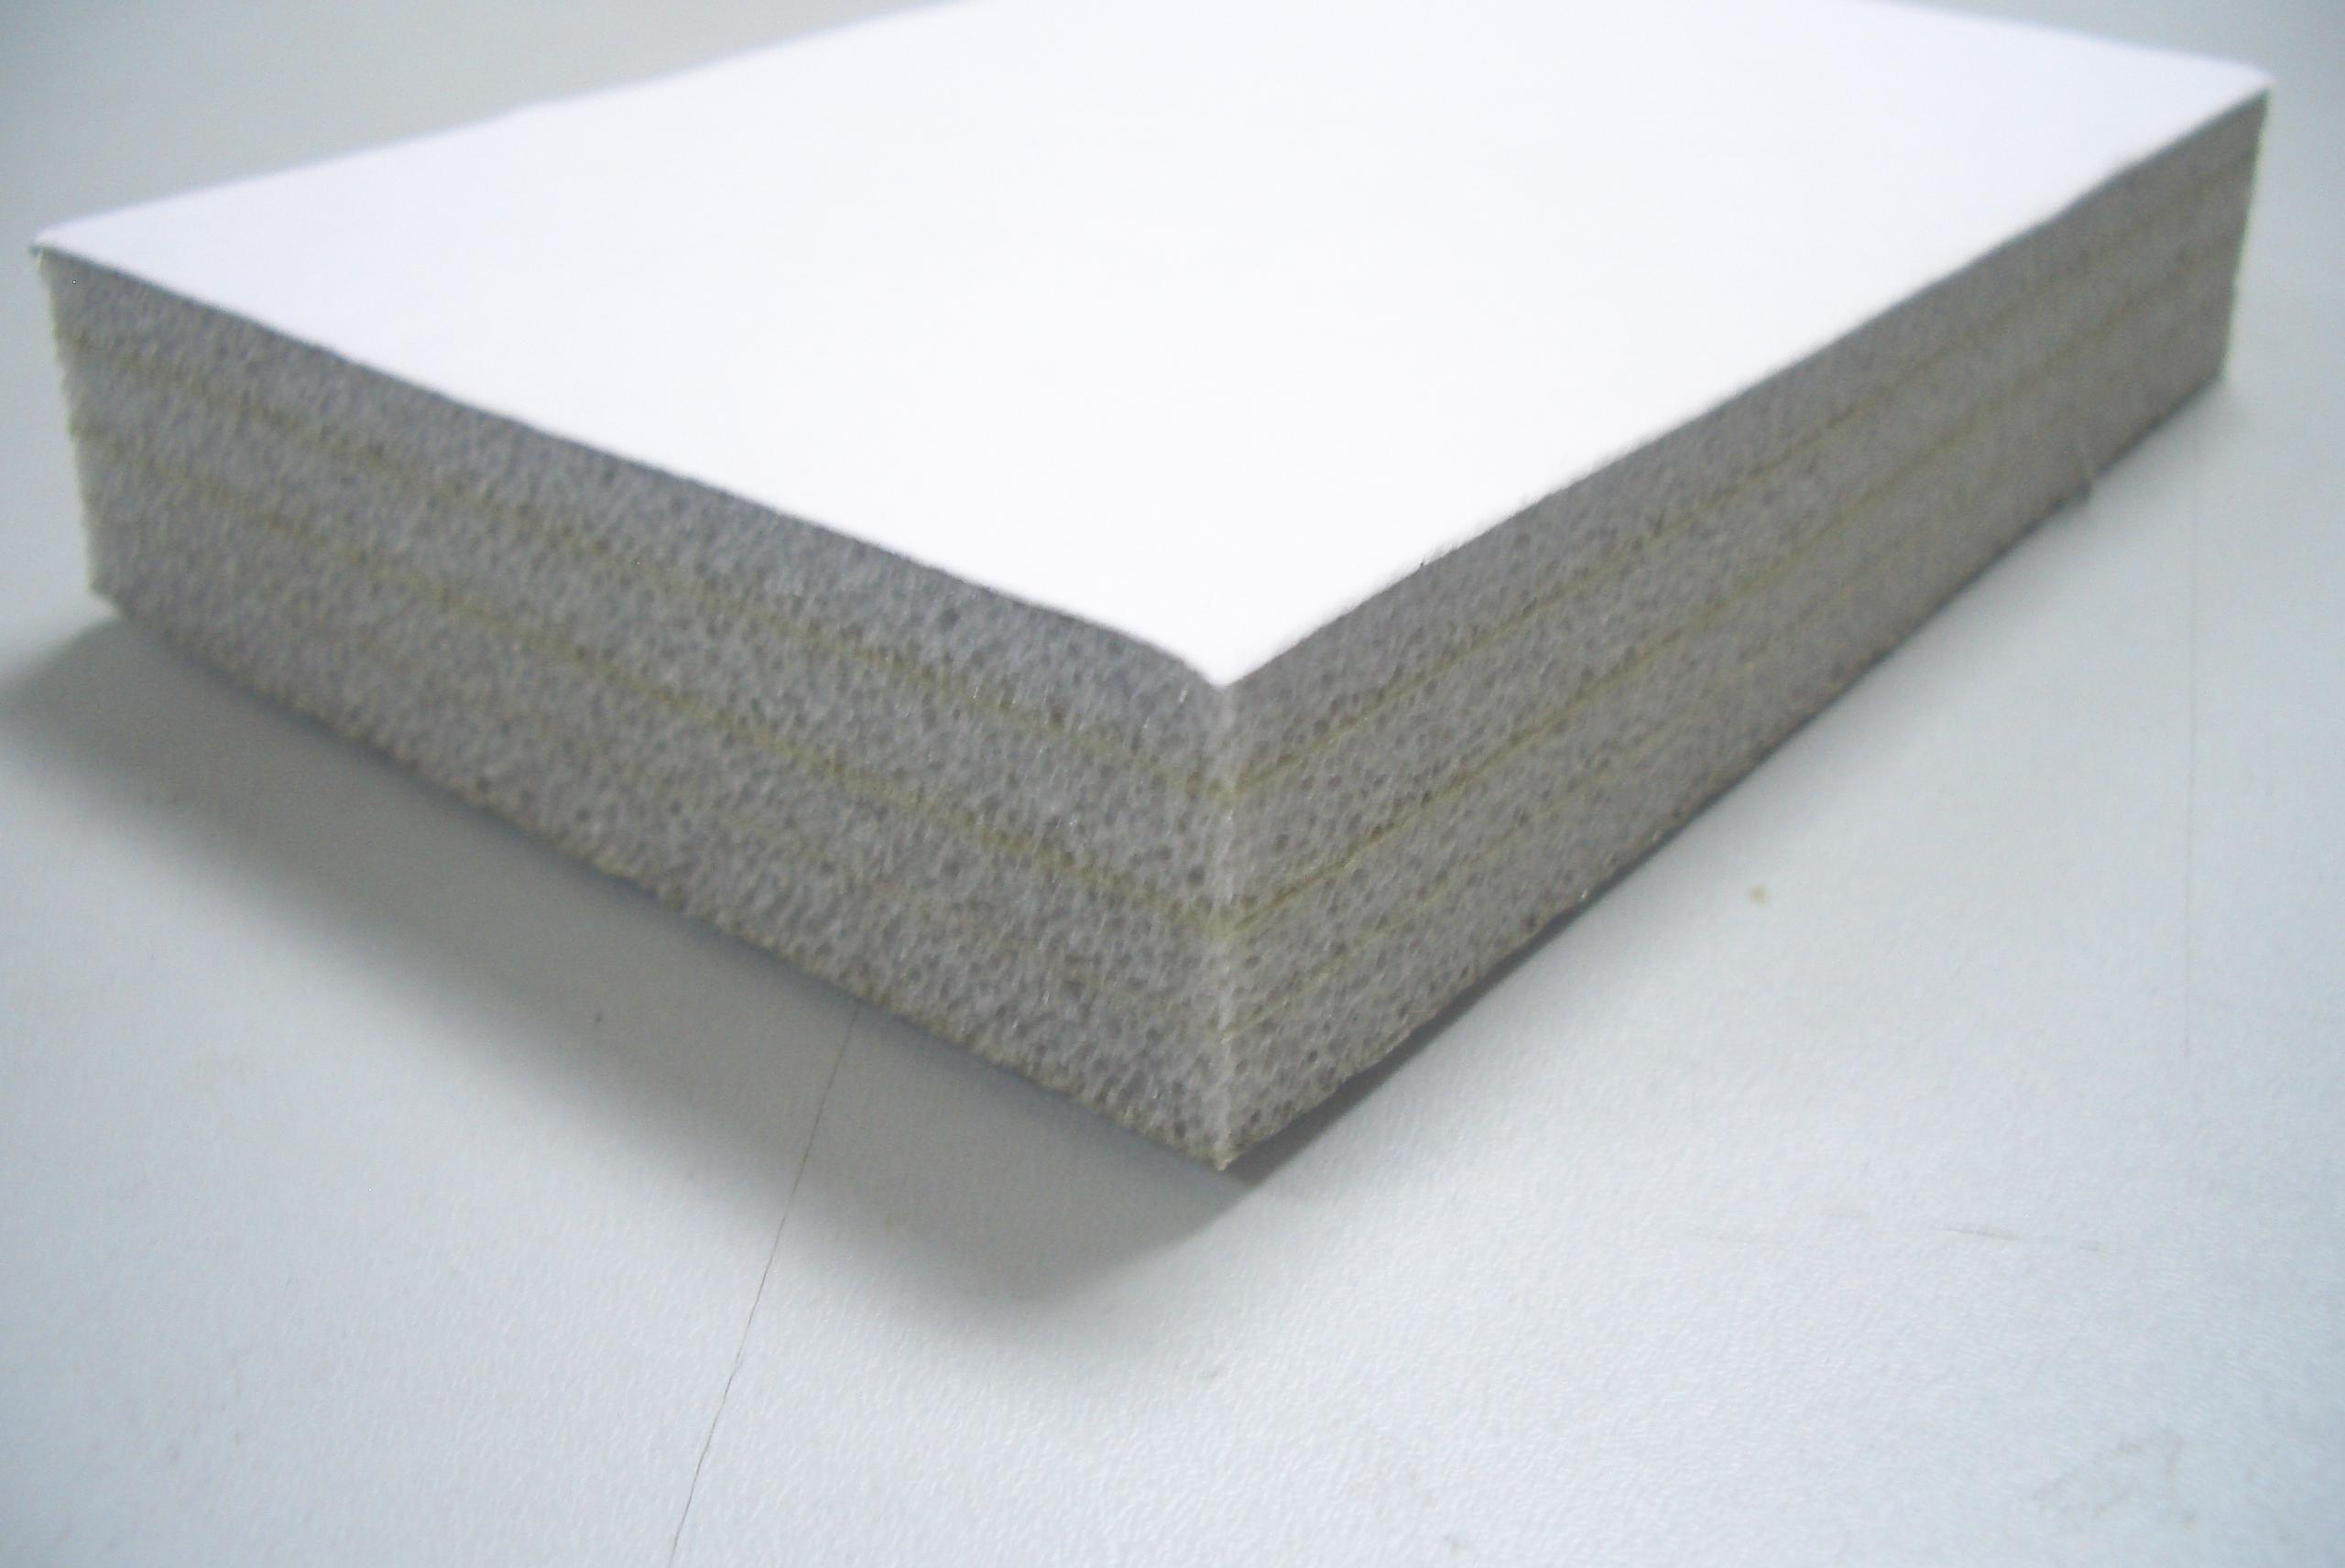 China good quality foam insulation material pe foam heat for Home insulation products